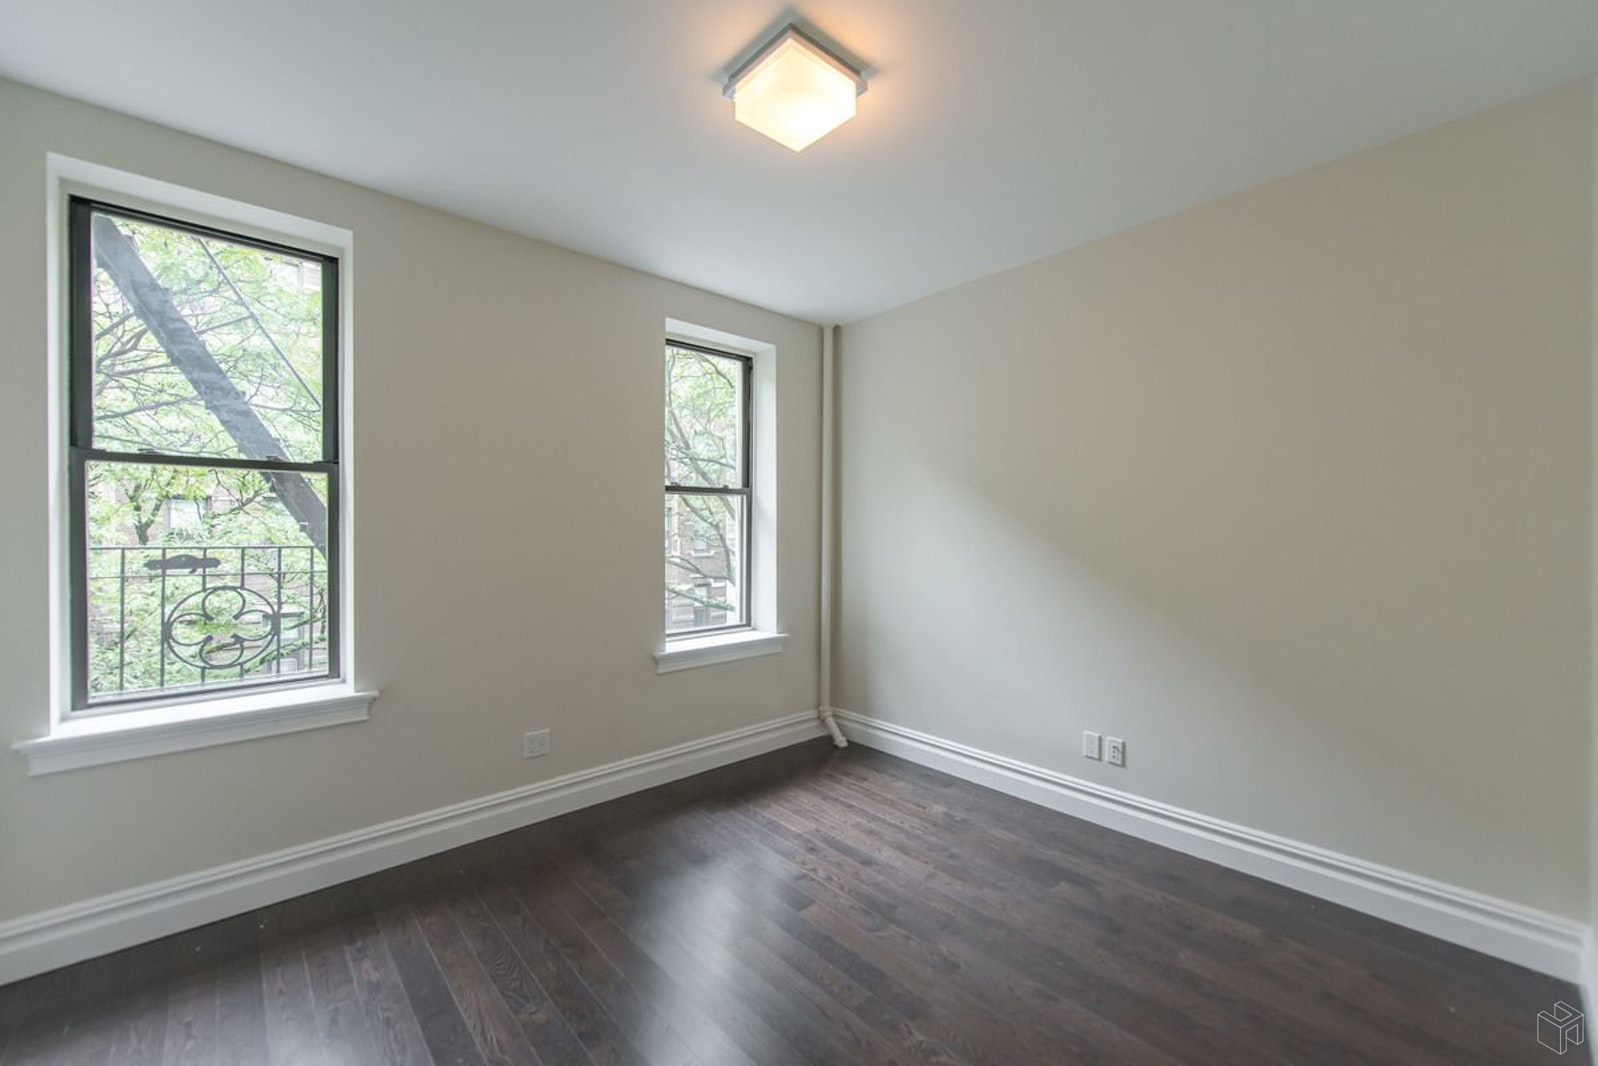 526 West 111th Street 2cd, Upper West Side, NYC, 10025, Price Not Disclosed, Rented Property, Halstead Real Estate, Photo 9